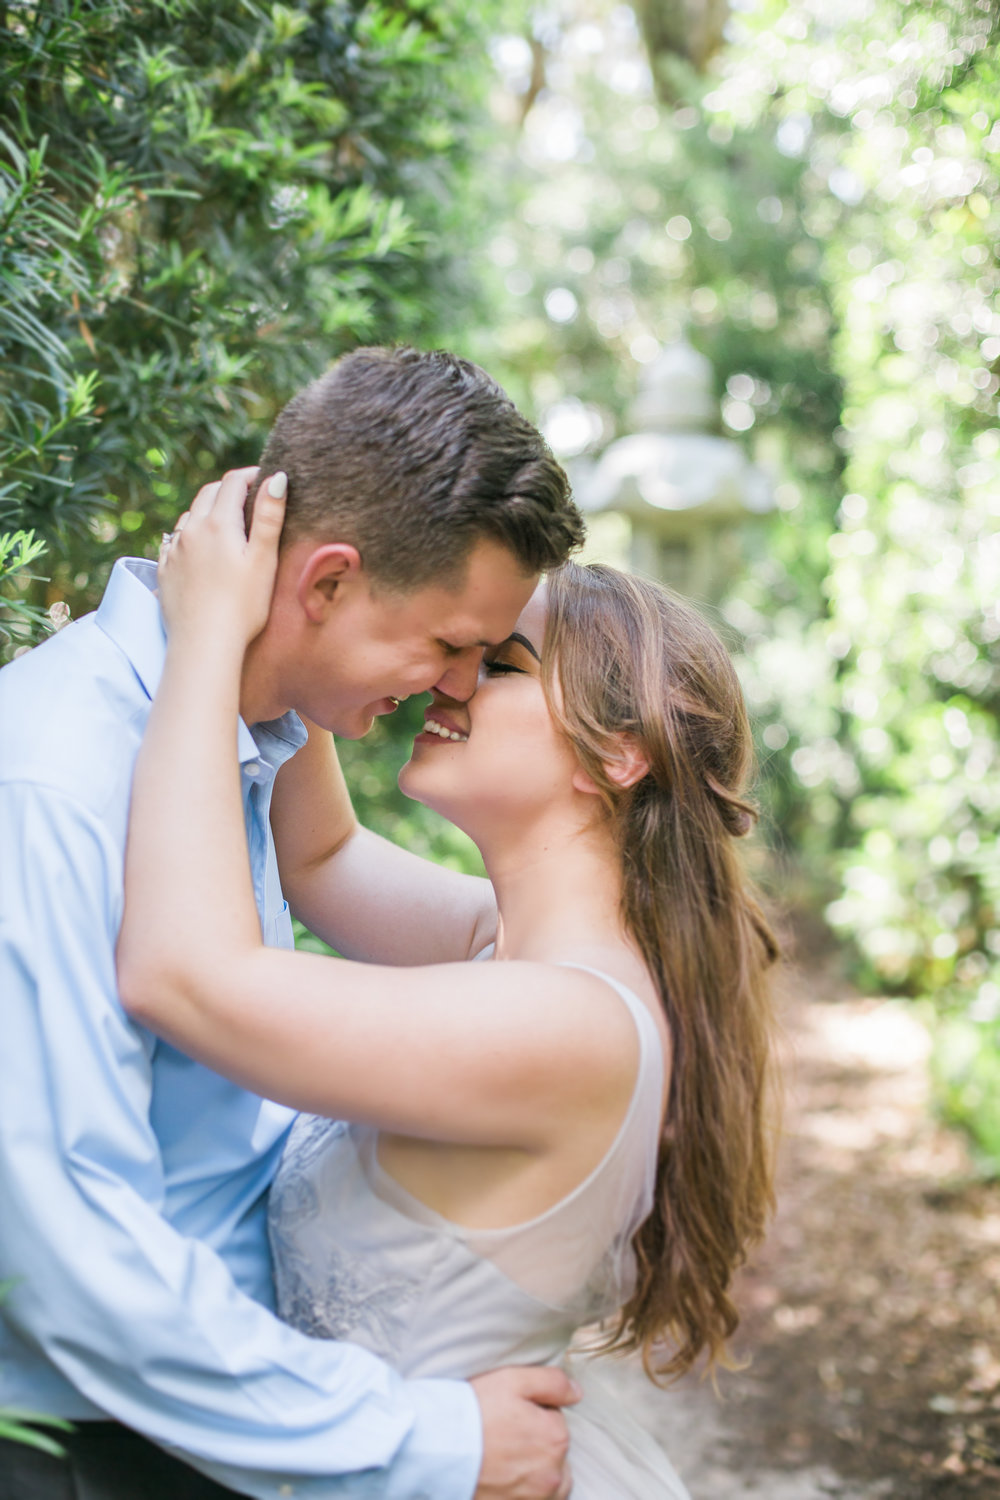 Scarlett + Derek - Bok Tower Gardens Wedding Photographer - Bok Tower Gardens Engagement Session - Preview Photos - Emily & Co. Photography (22).jpg